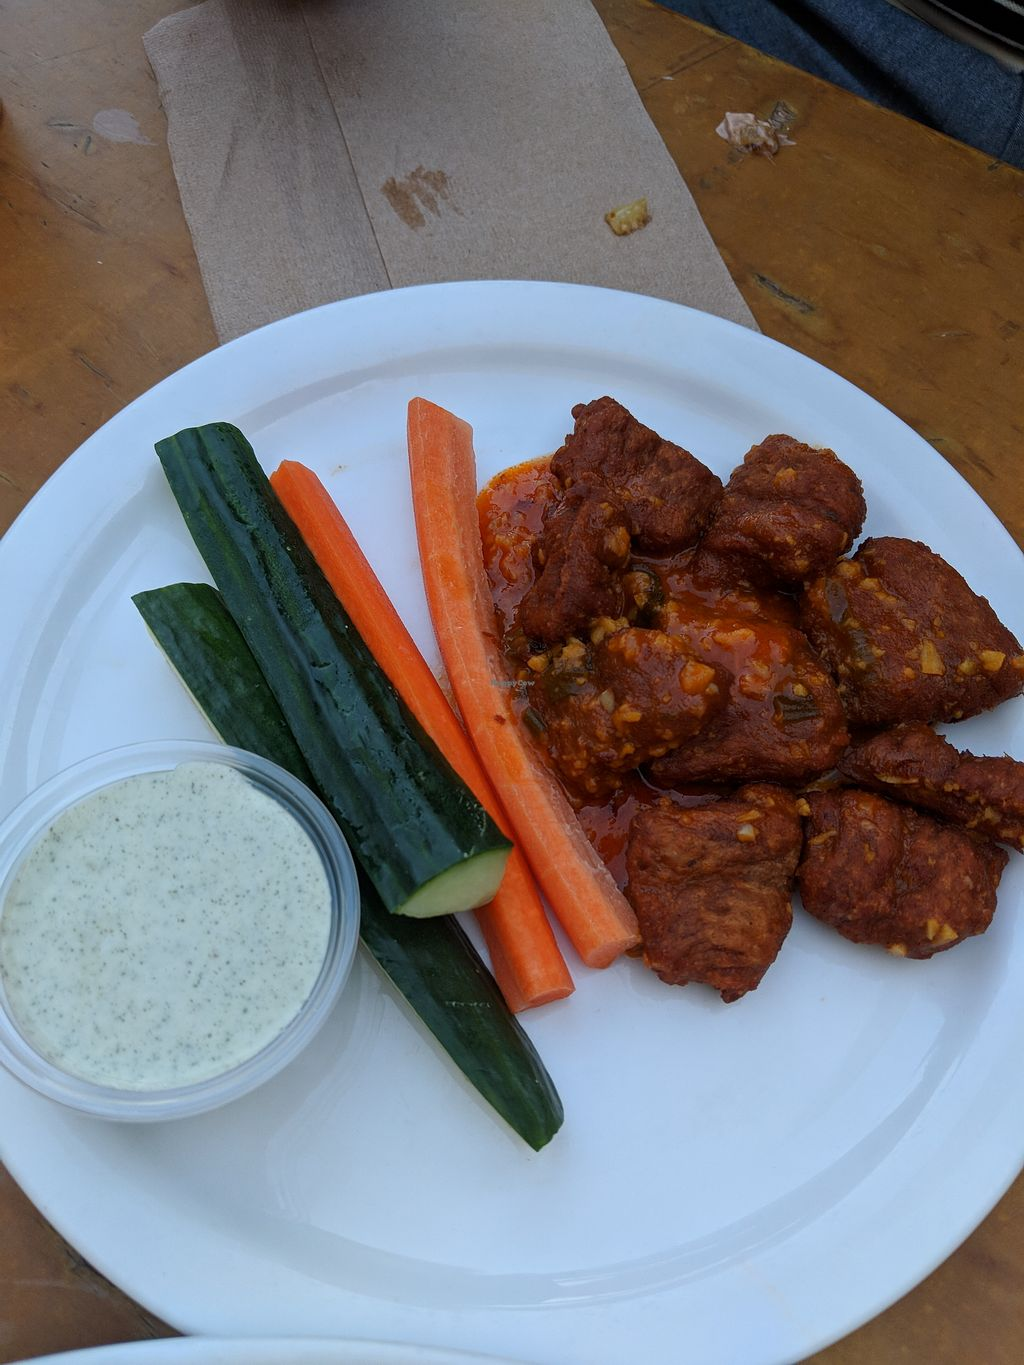 """Photo of Green New American Vegetarian  by <a href=""""/members/profile/Annik_Rousseau"""">Annik_Rousseau</a> <br/>Buffalo wings <br/> April 27, 2018  - <a href='/contact/abuse/image/31065/391503'>Report</a>"""